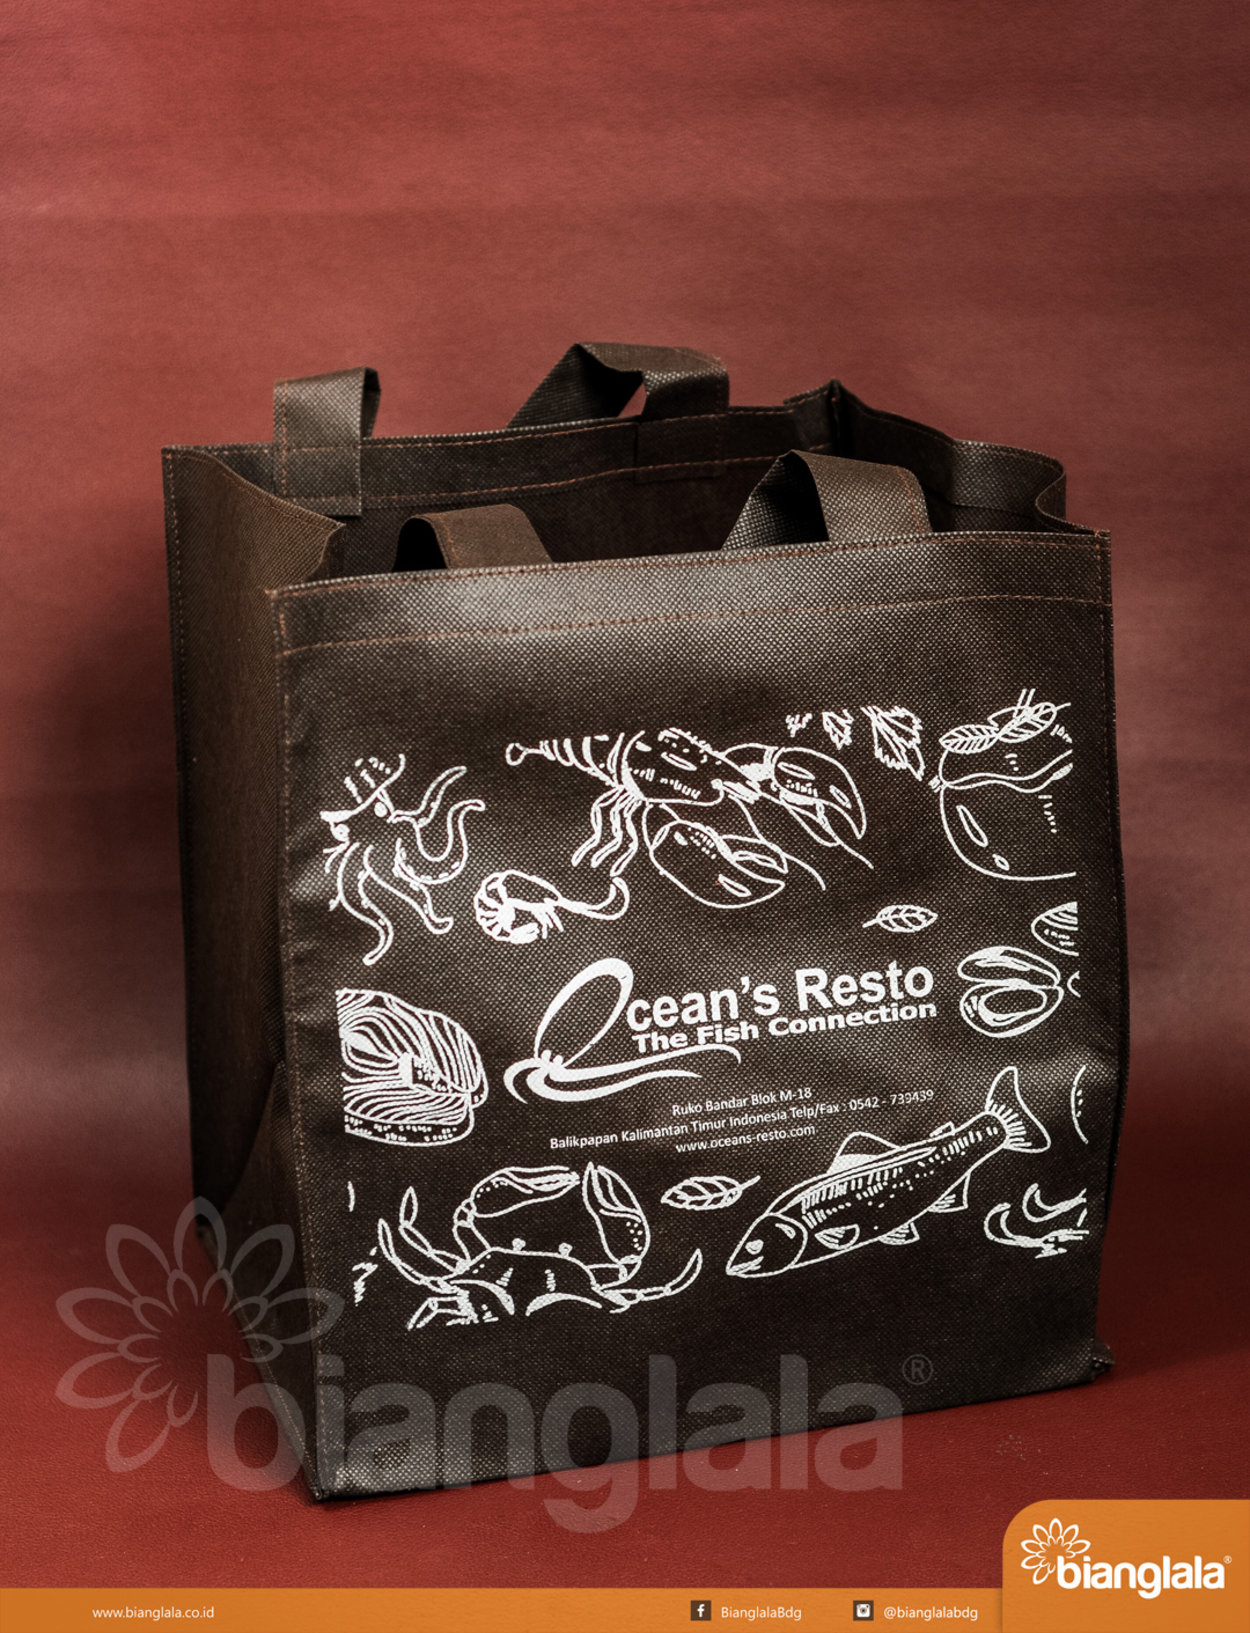 goodie bag ocean's resto